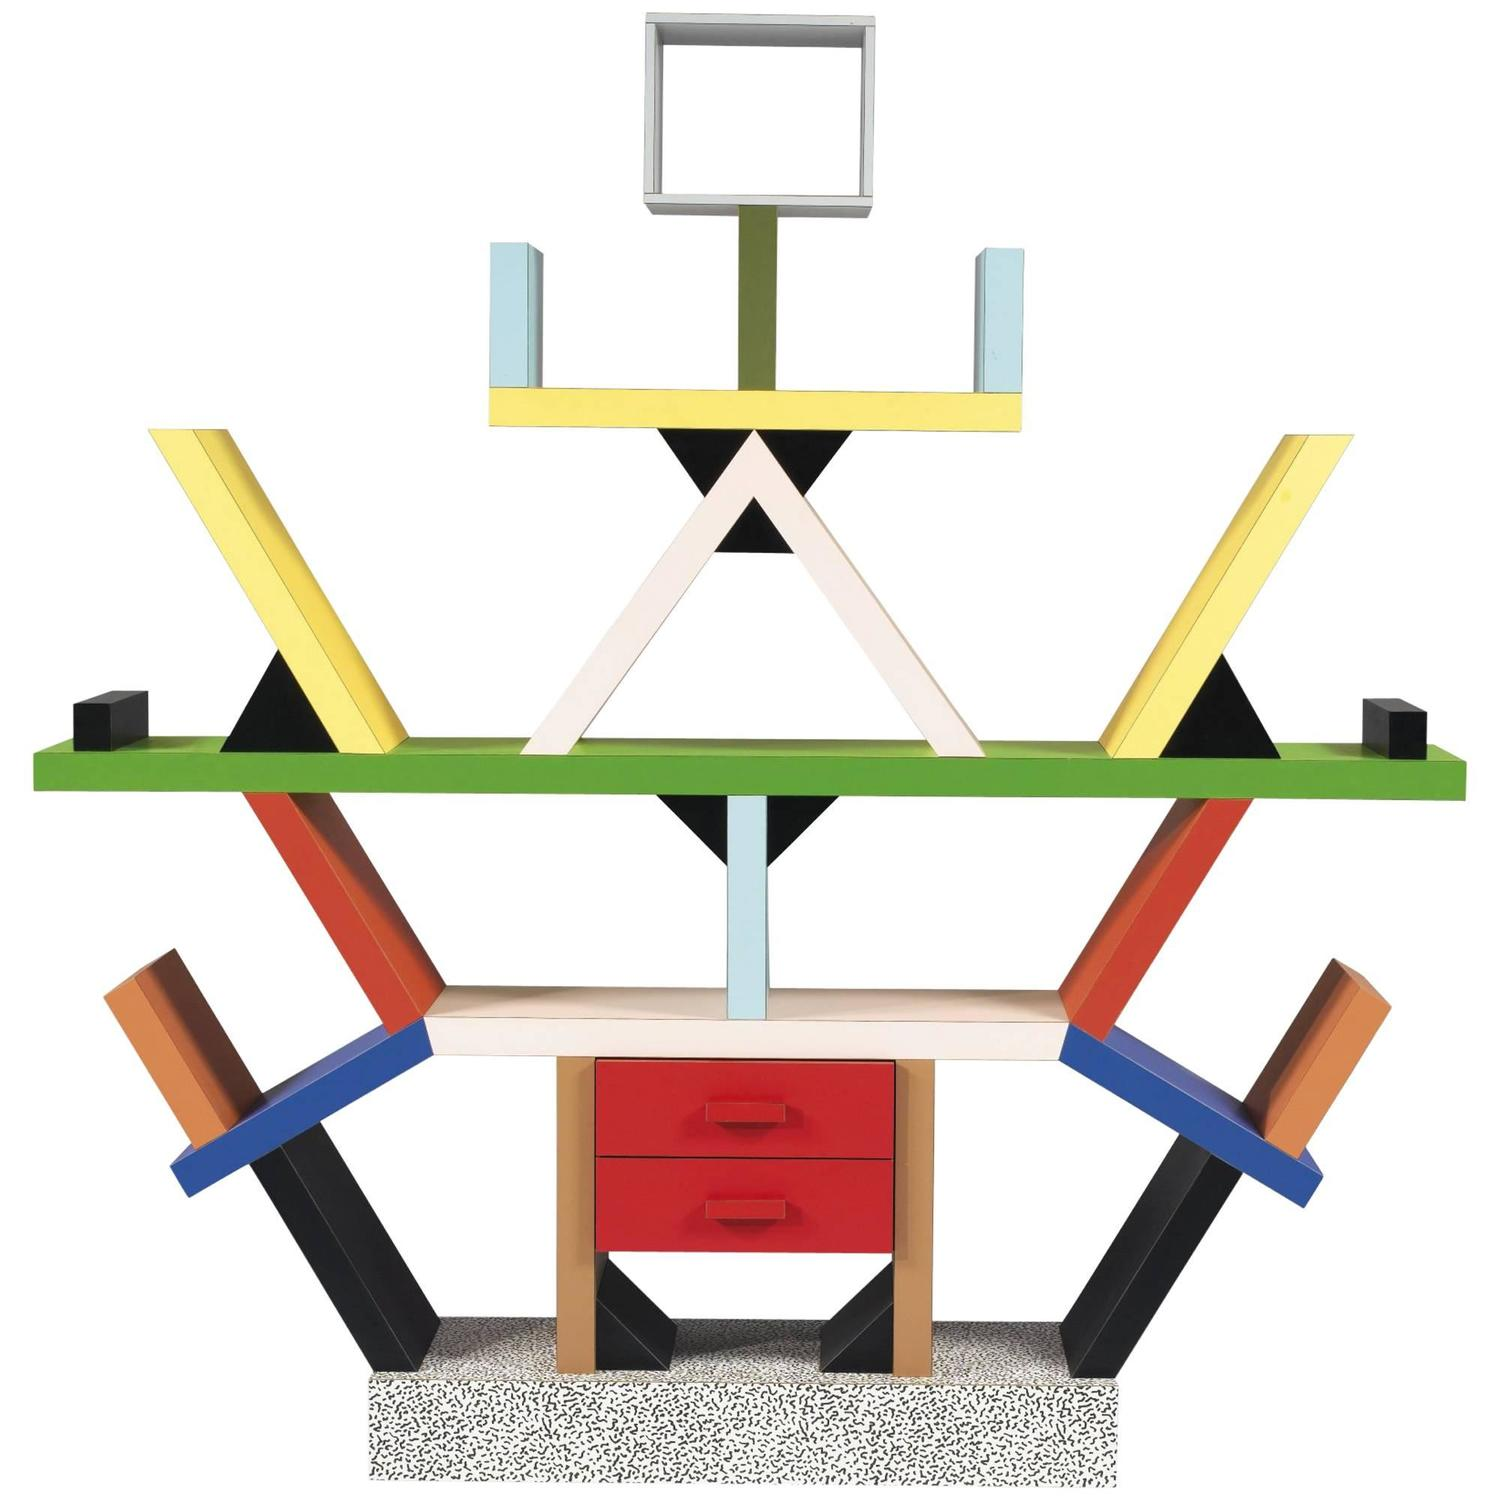 memphis design furniture. 1981, Ettore Sottsass, Memphis \u0027Carlton\u0027 Bookshelf, Vintage Production Design Furniture A